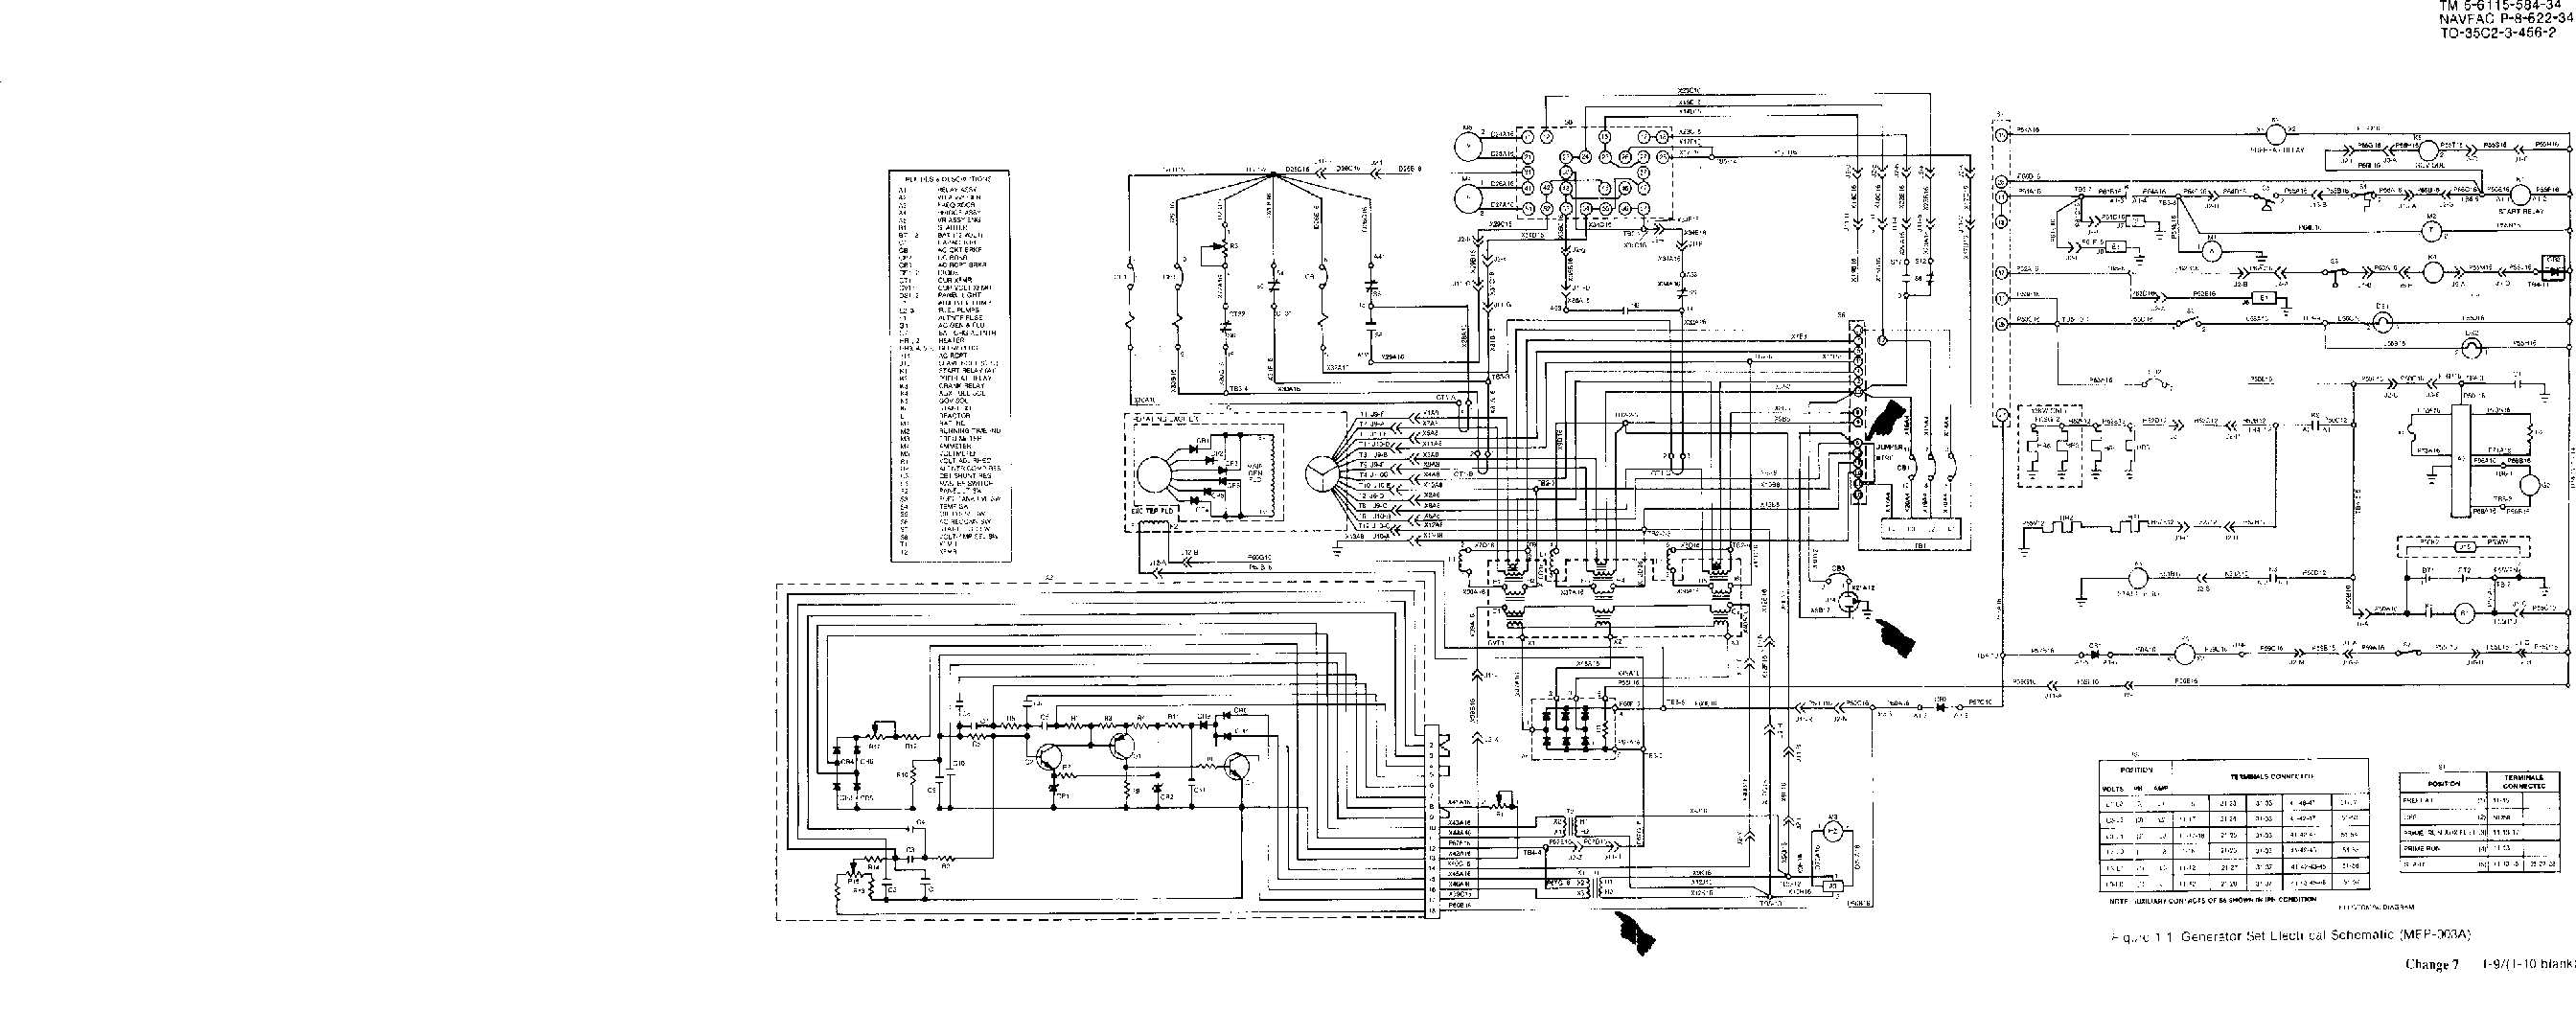 Figure 11 Generator Set Electrical Schematic Diagram